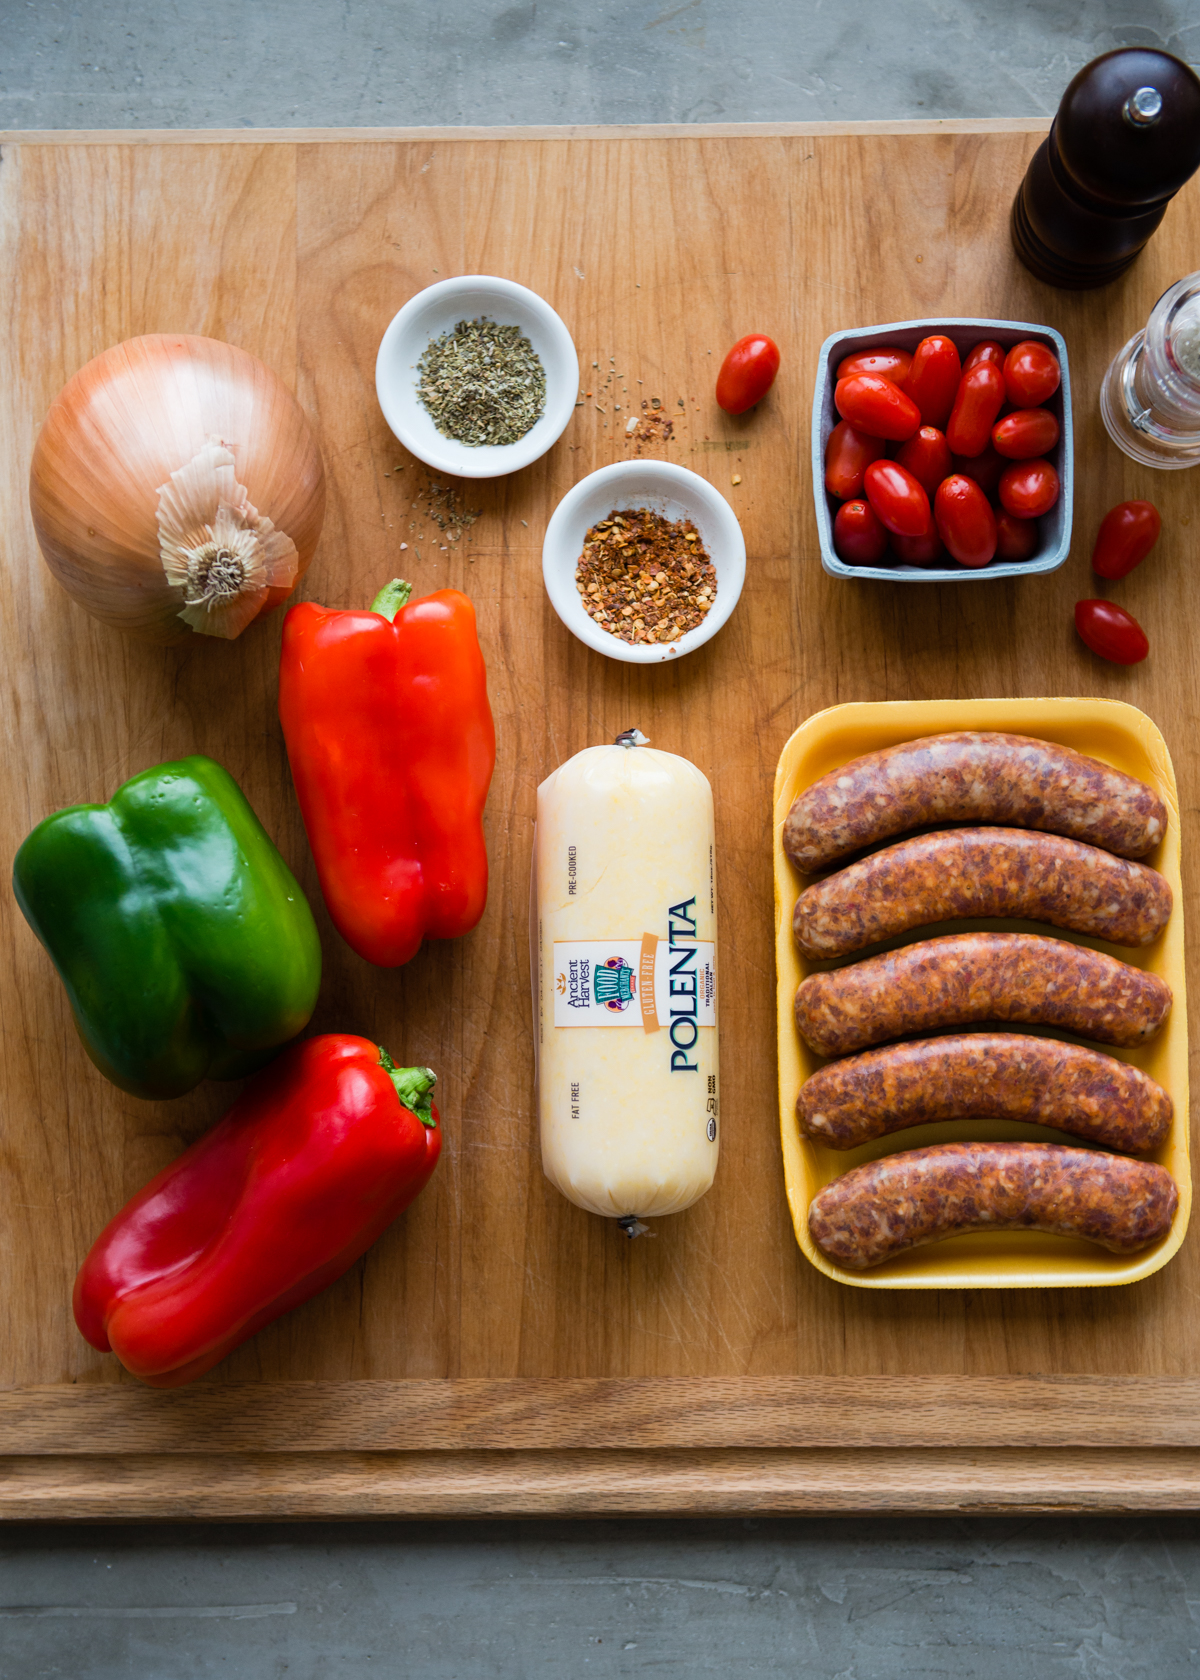 Ingredients for Sheet Pan Sausage and Peppers   DesignMom.com